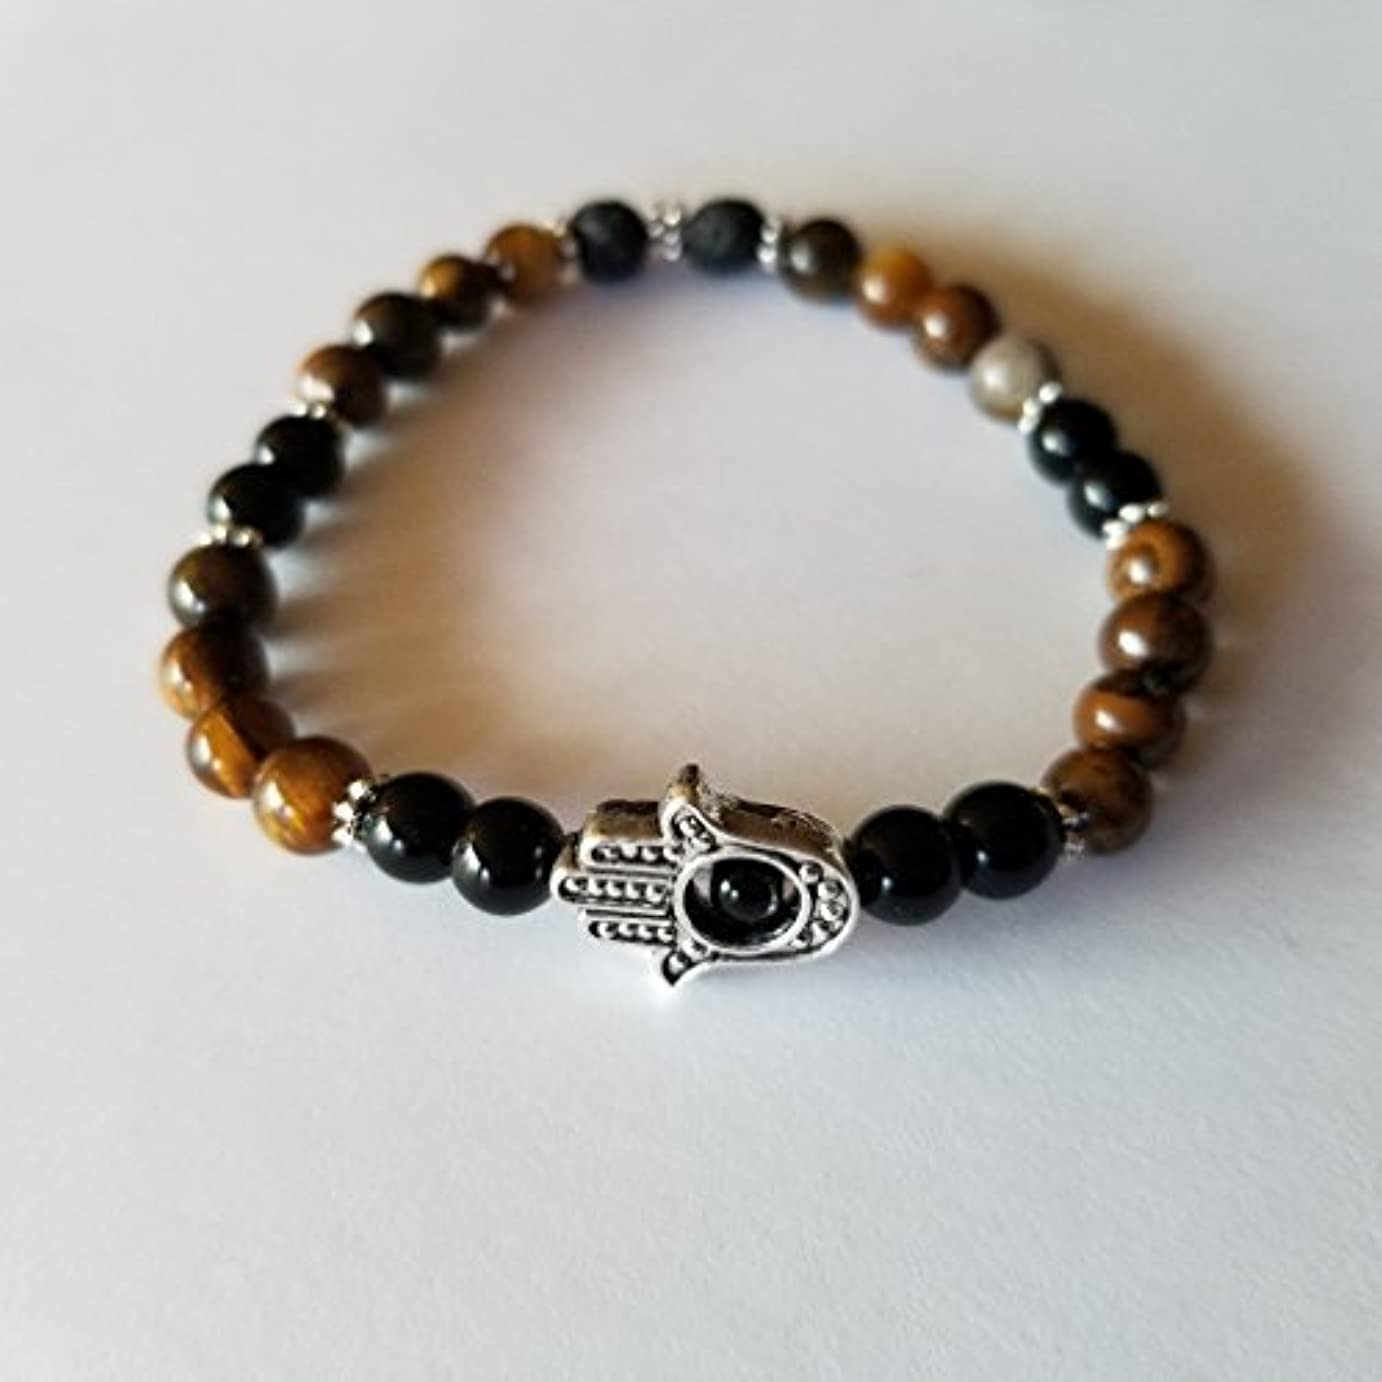 一致するテクトニック技術者Handmade Tiger's Eye Black Jasper and Black Lava Essential Oil Diffuser Bracelet featuring Hamsa Hand - 7 [並行輸入品]